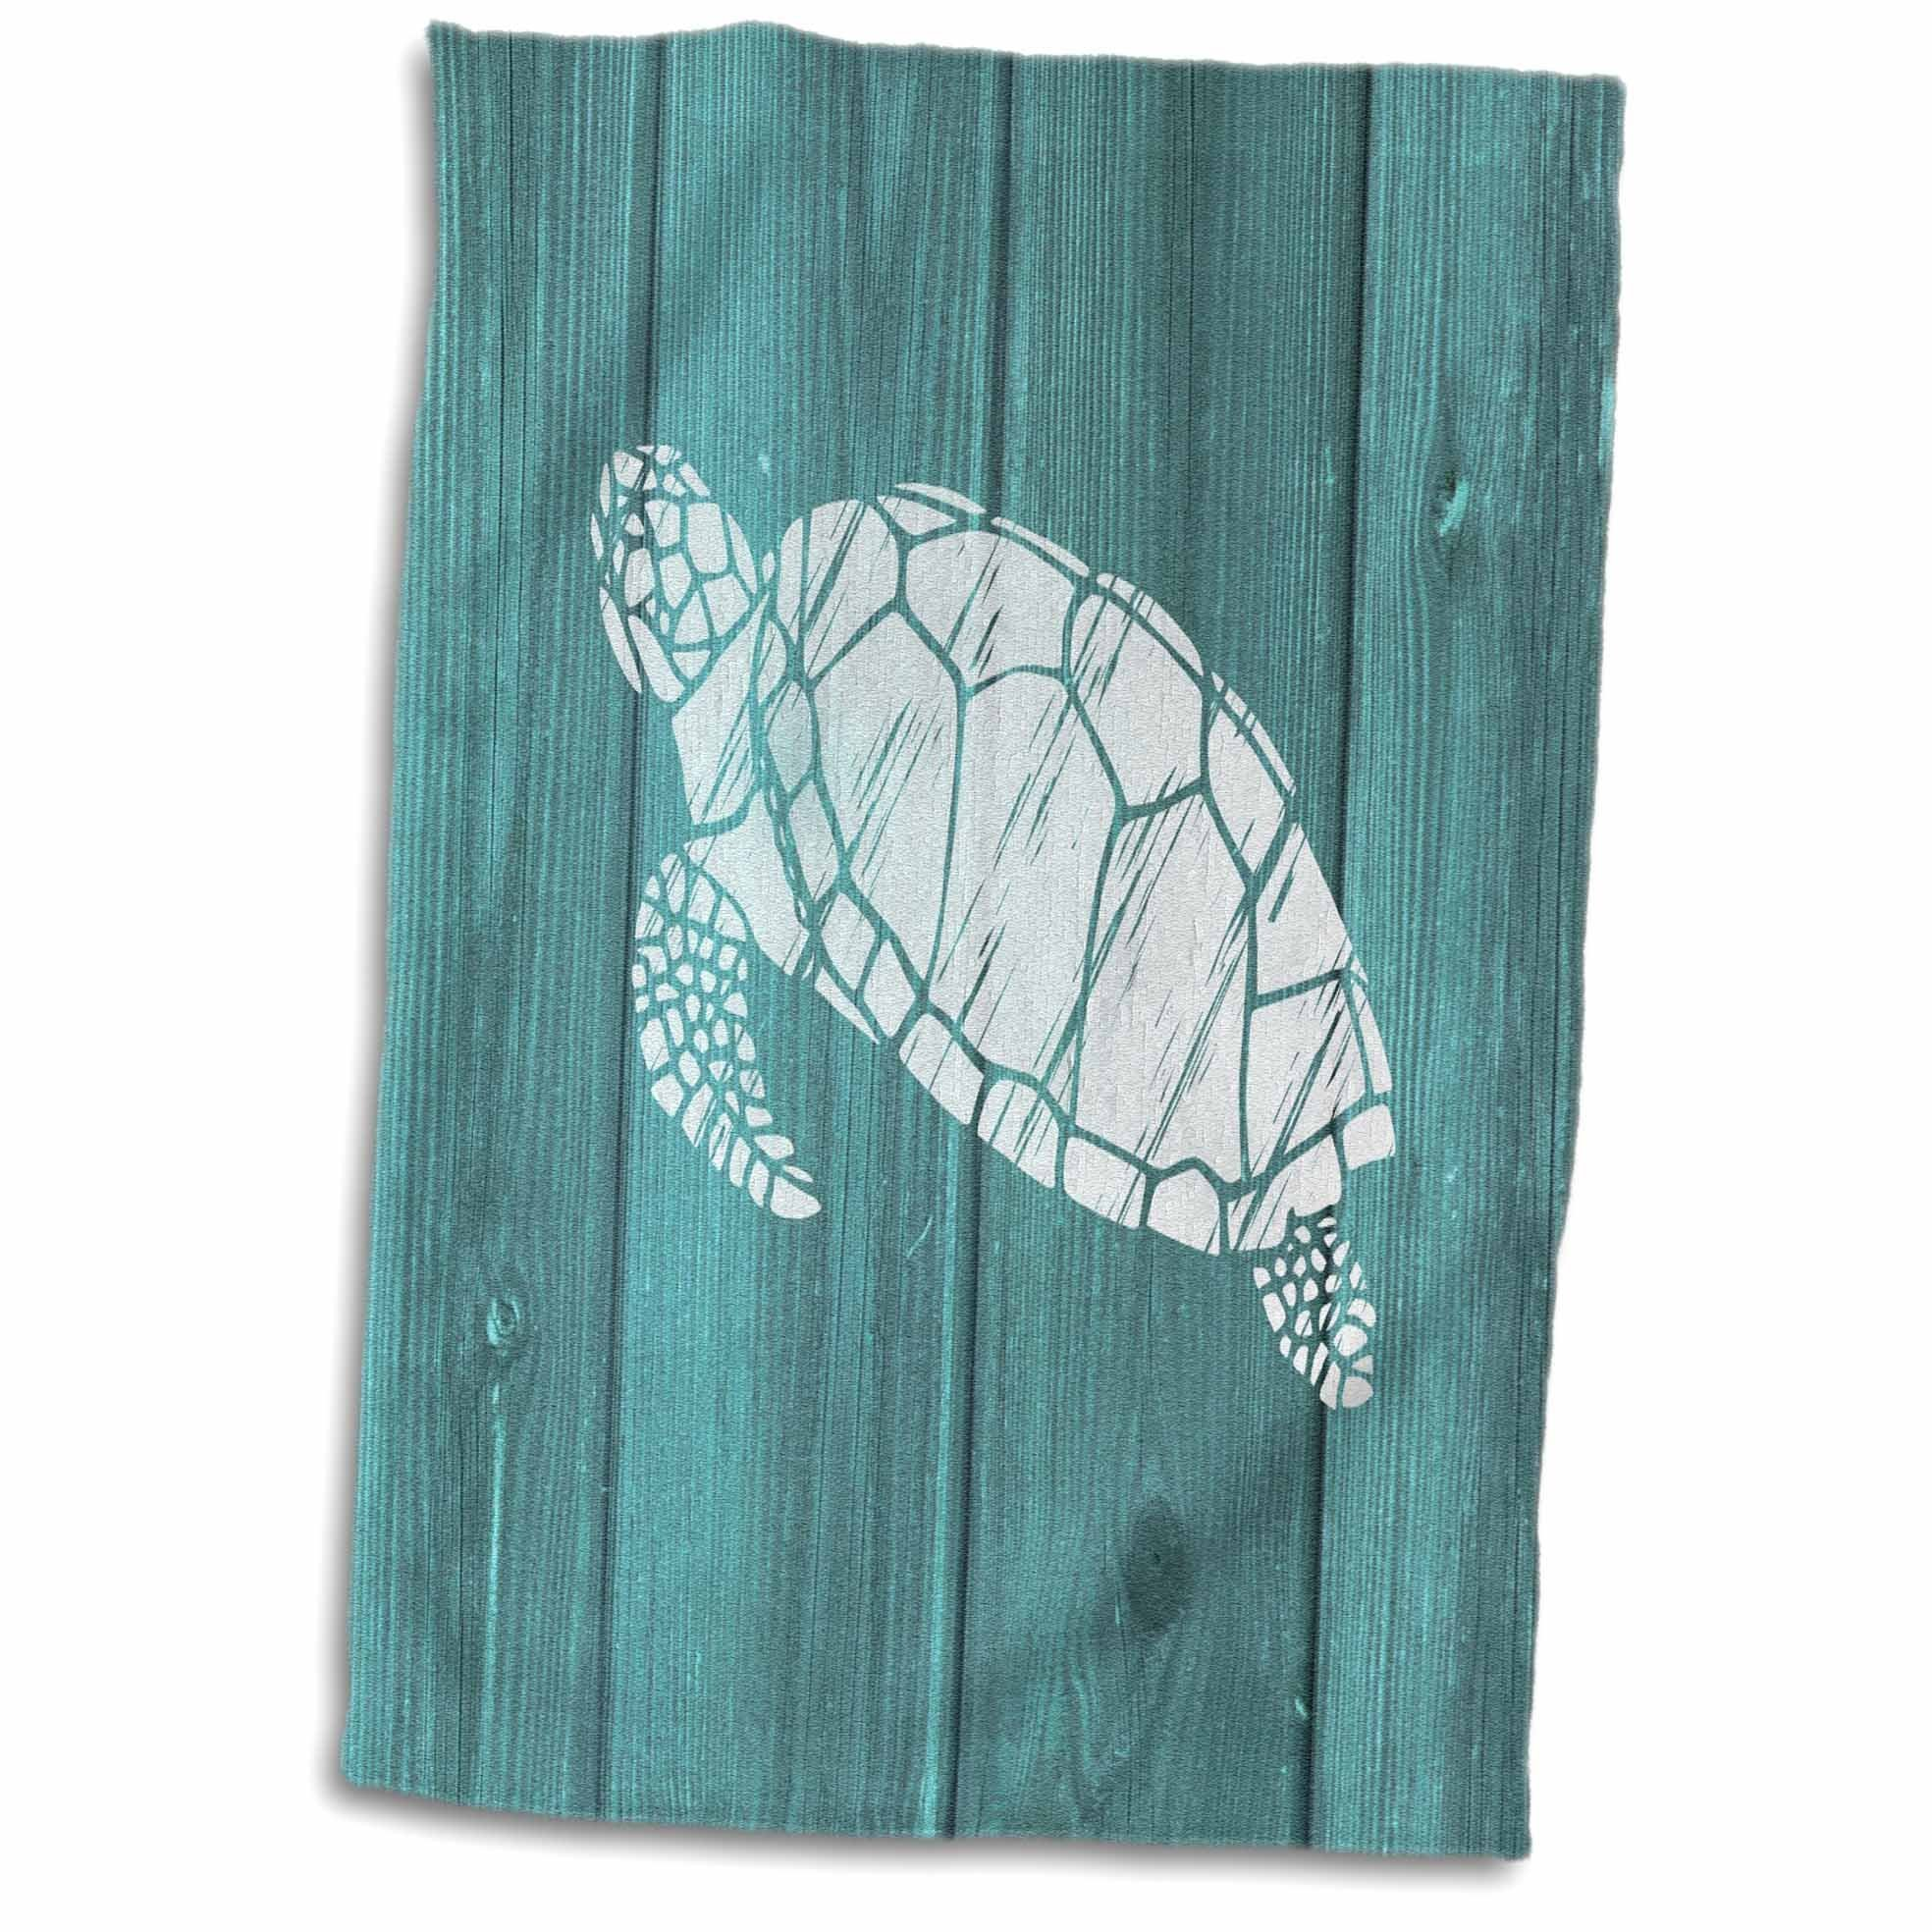 3D Rose Turtle Stencil in White Over Teal Weatherboard-Not Real Wood Hand Towel, 15'' x 22'', Multicolor